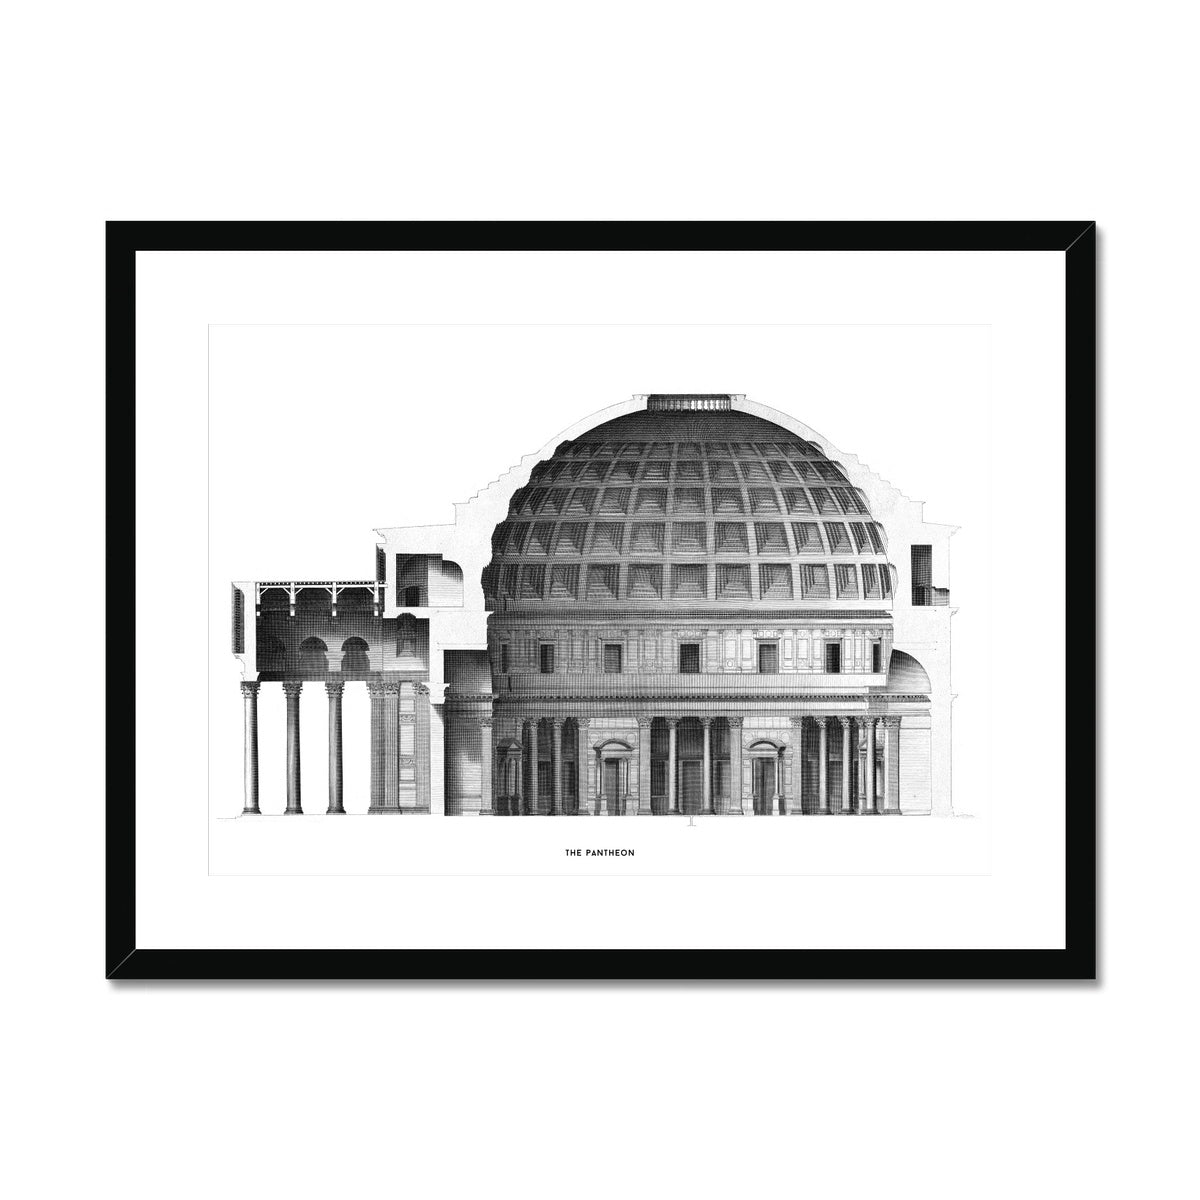 The Pantheon - Alternative Cross Section -  Framed & Mounted Print